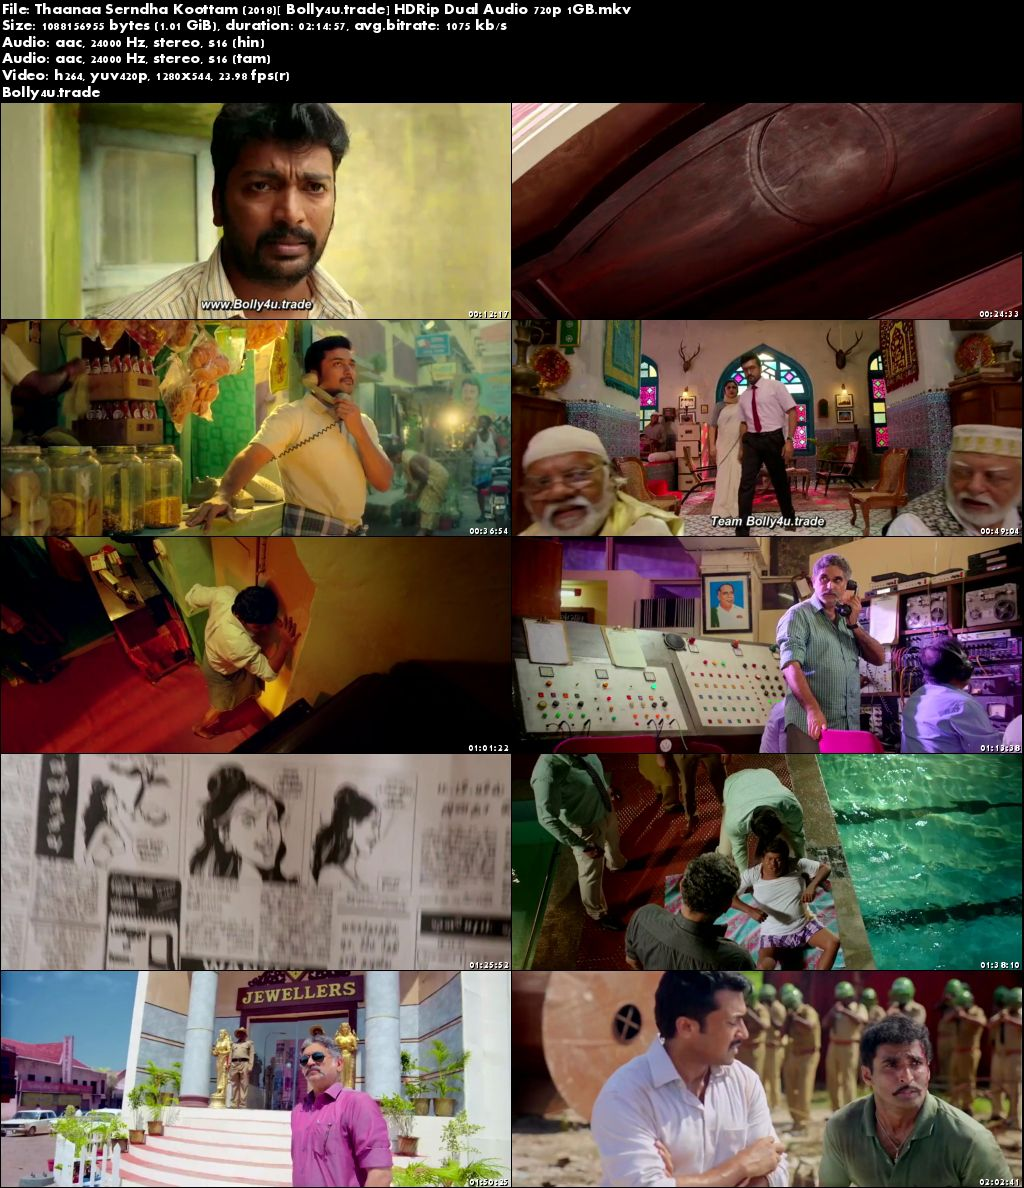 Thaanaa Serndha Koottam 2018 HDRip 1GB Hindi Dual Audio 720p Download